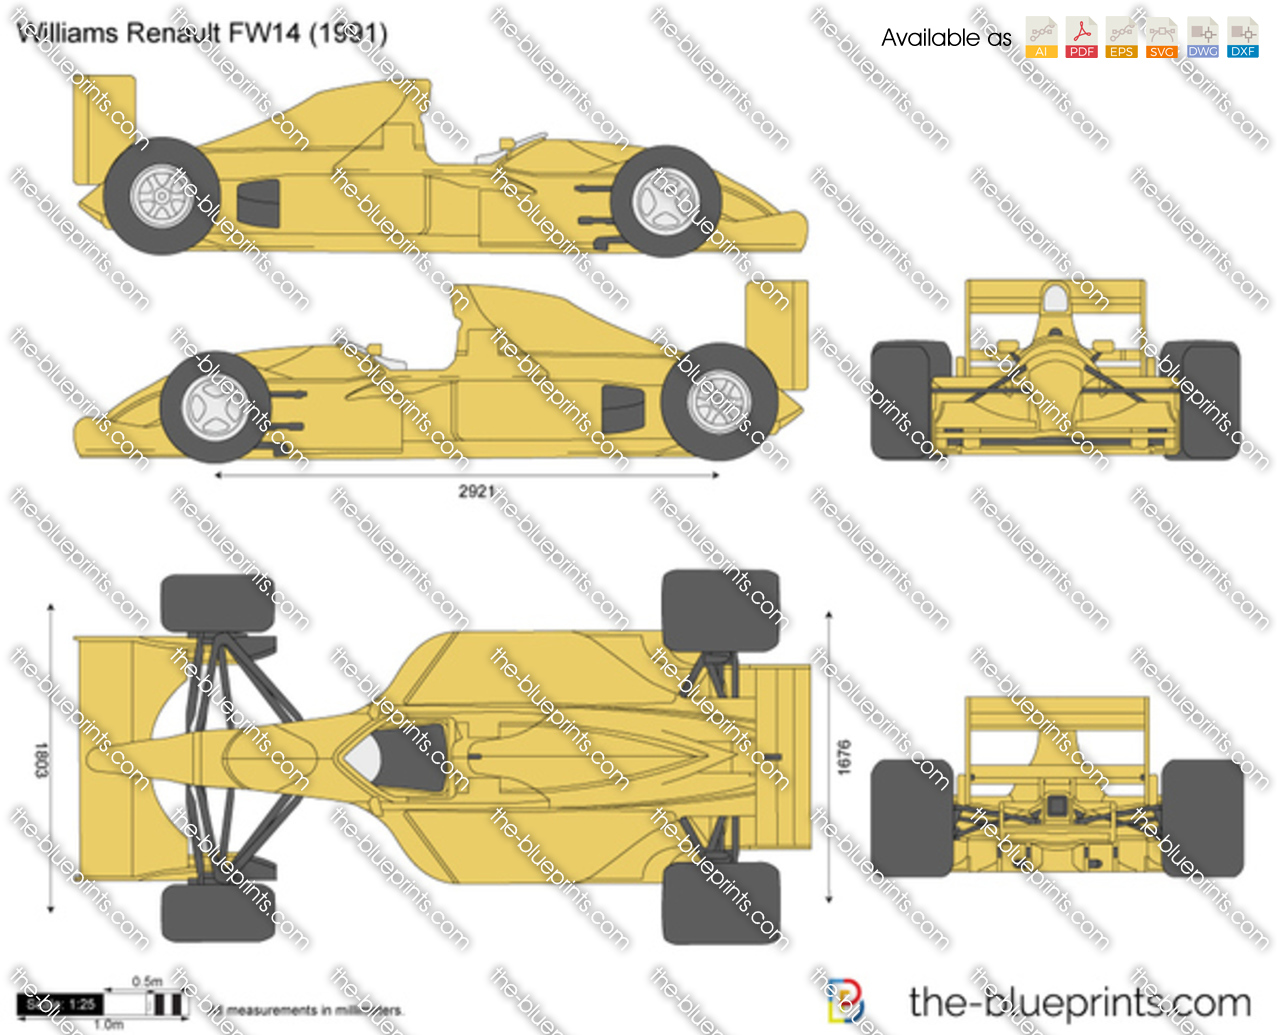 The Blueprints Com Vector Drawing Williams Renault Fw14